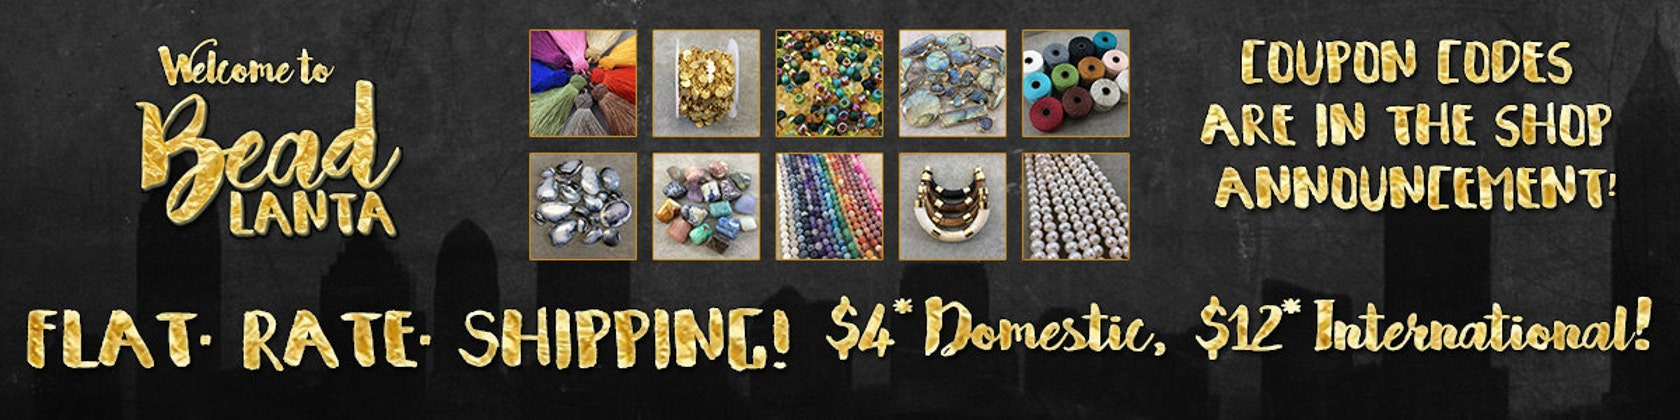 Flat rate shipping coupons in shop announcement by beadlanta beadlanta fandeluxe Image collections